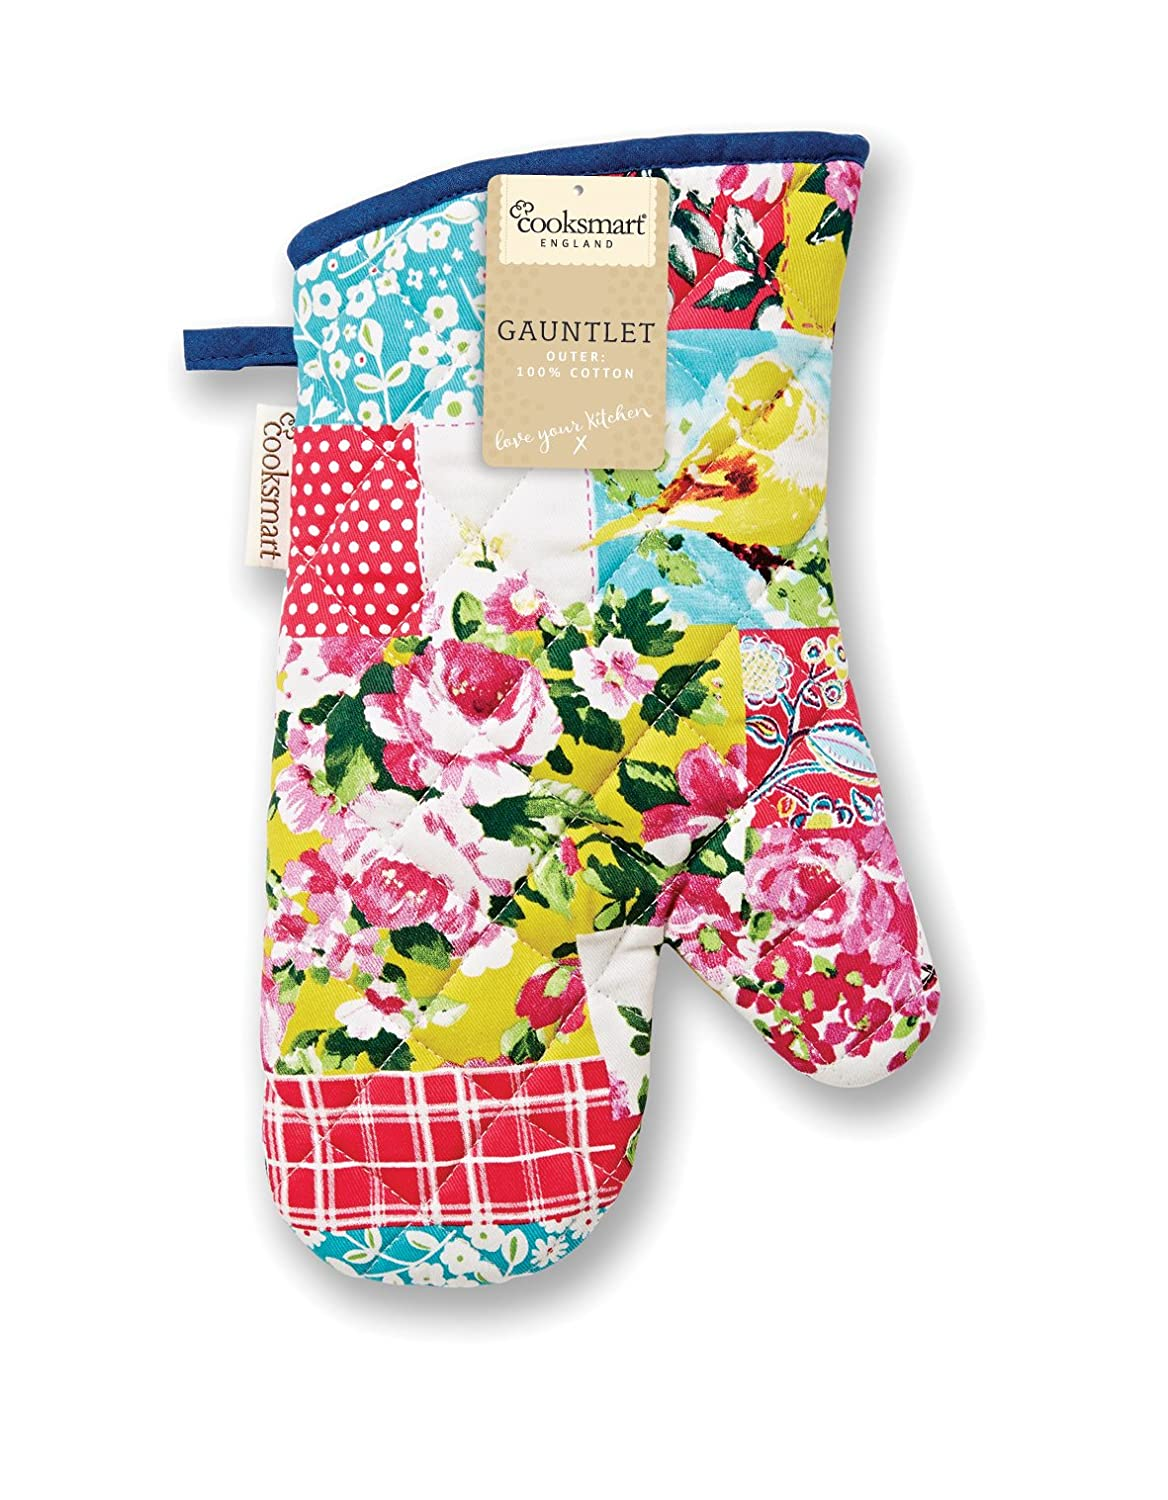 Cooksmart Oriental Patchwork Gauntlet, Multi Colour City Look Imports Ltd 9314